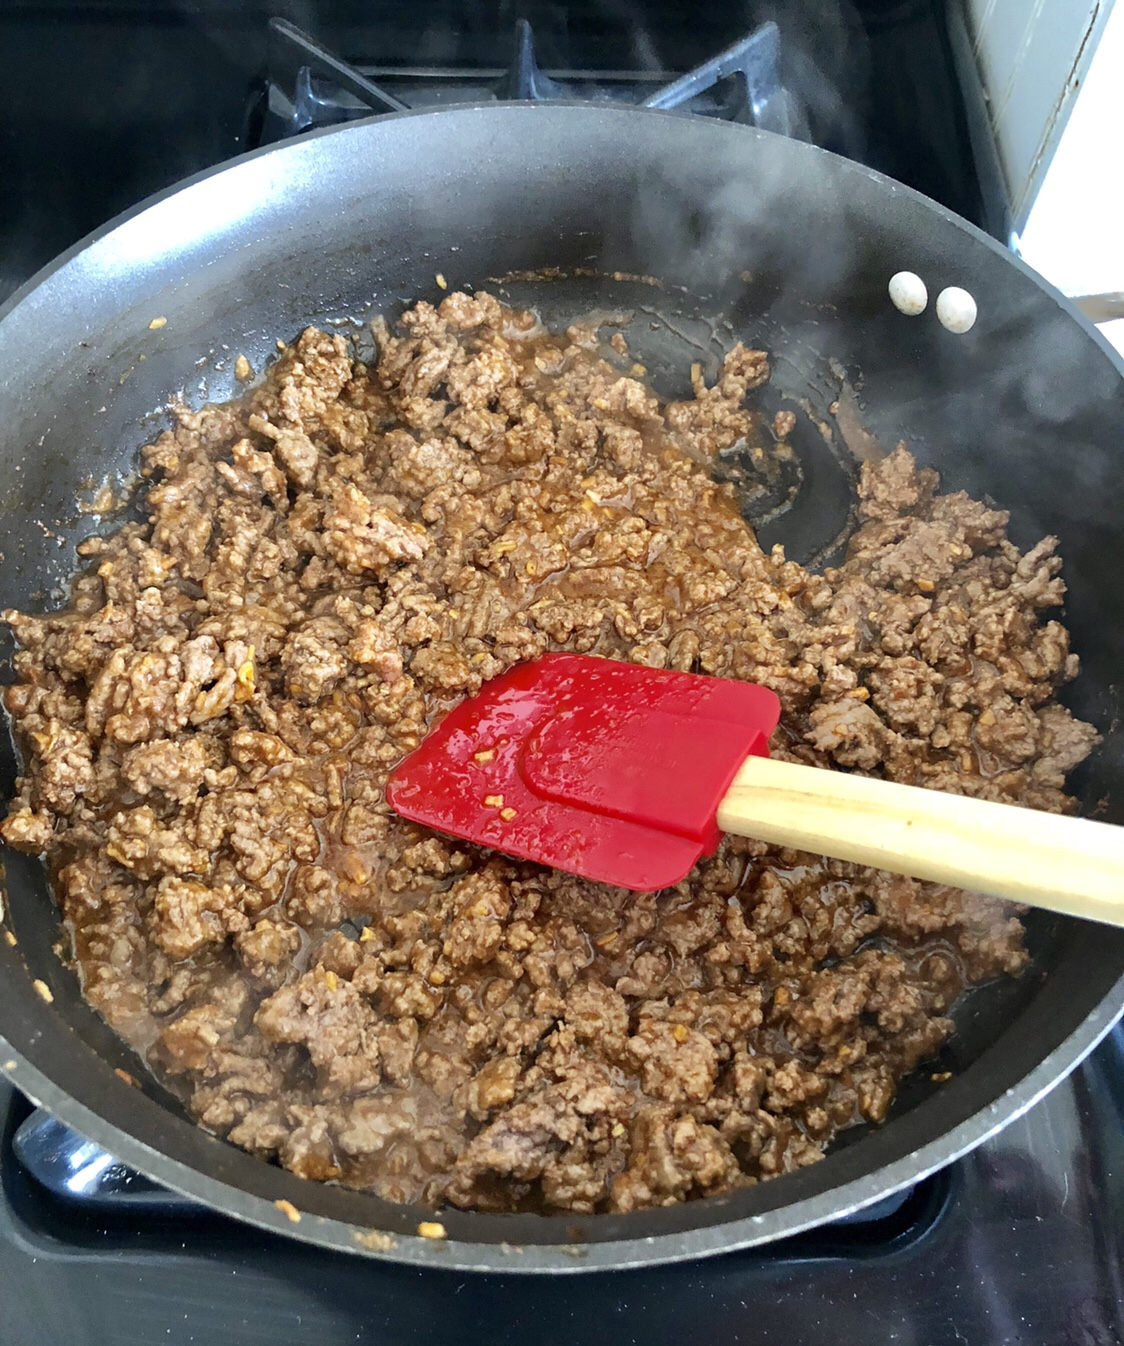 Stir in the taco seasoning and water. Bring to a boil and cook for 2 minutes. #totchos #tatertotnachos #cincodemayo #tatertotrecipes #mexicanrecipes